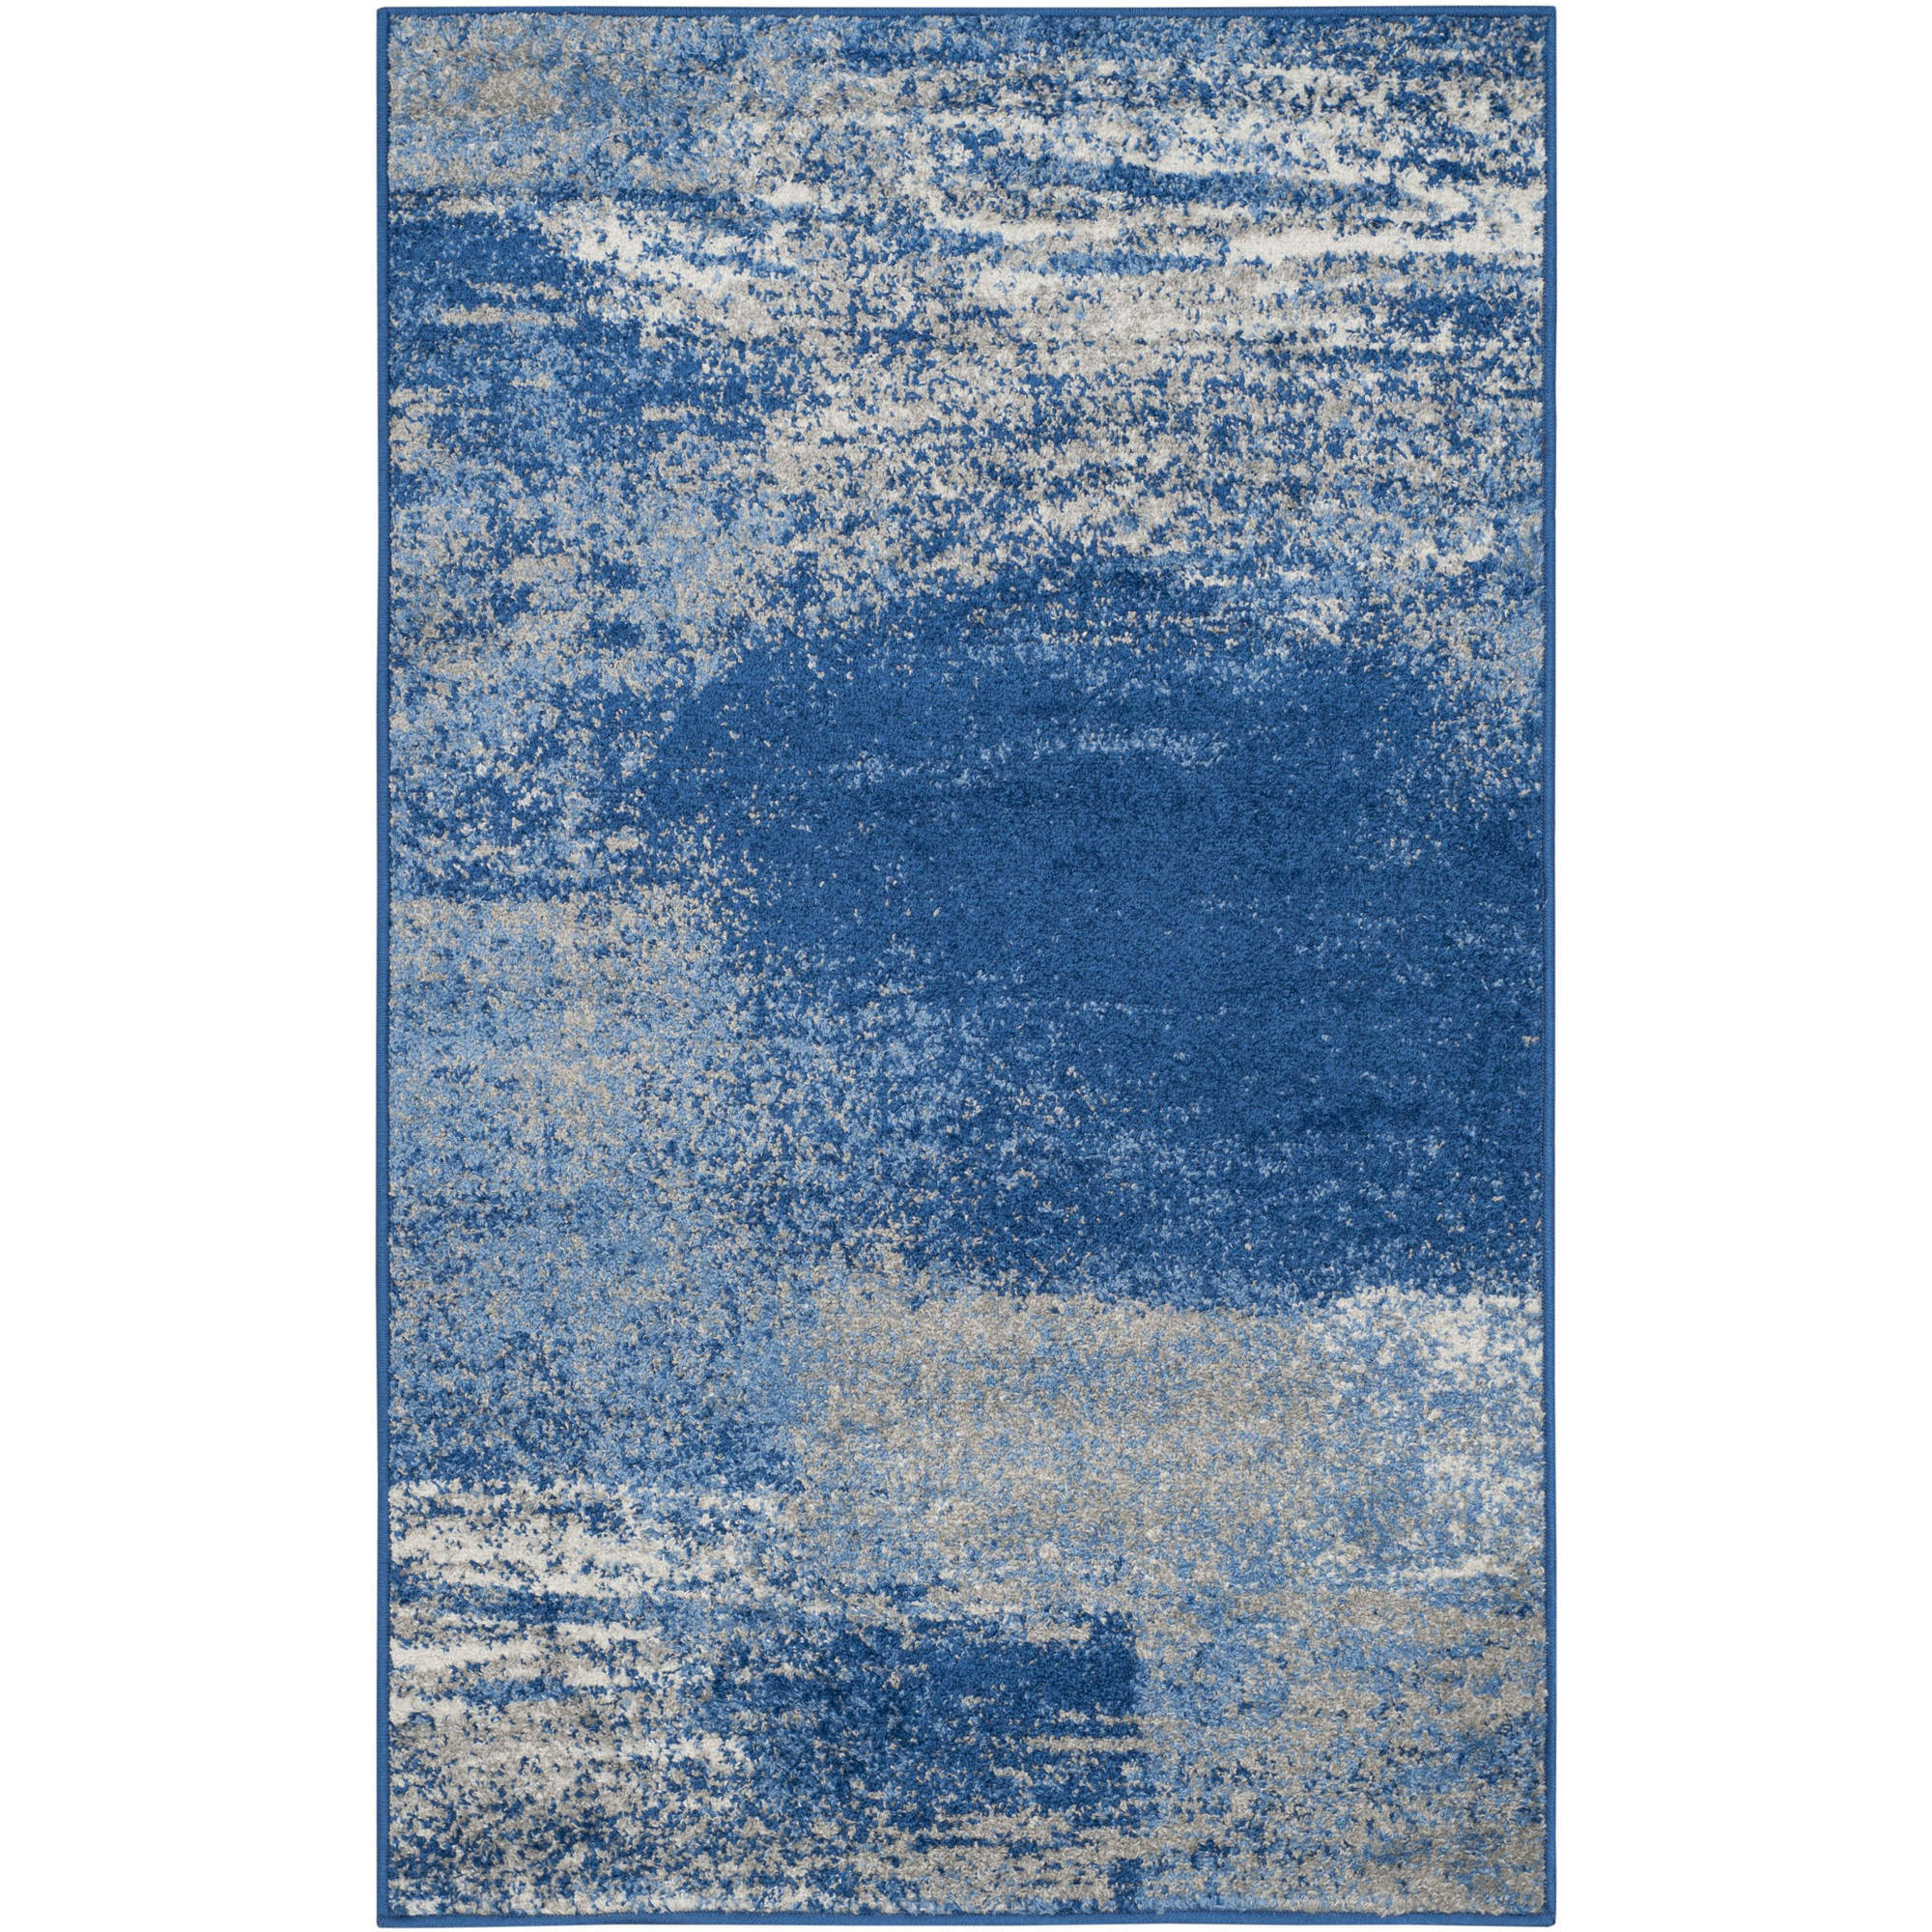 Safavieh Adirondack Rudyard Abstract Area Rug or Runner